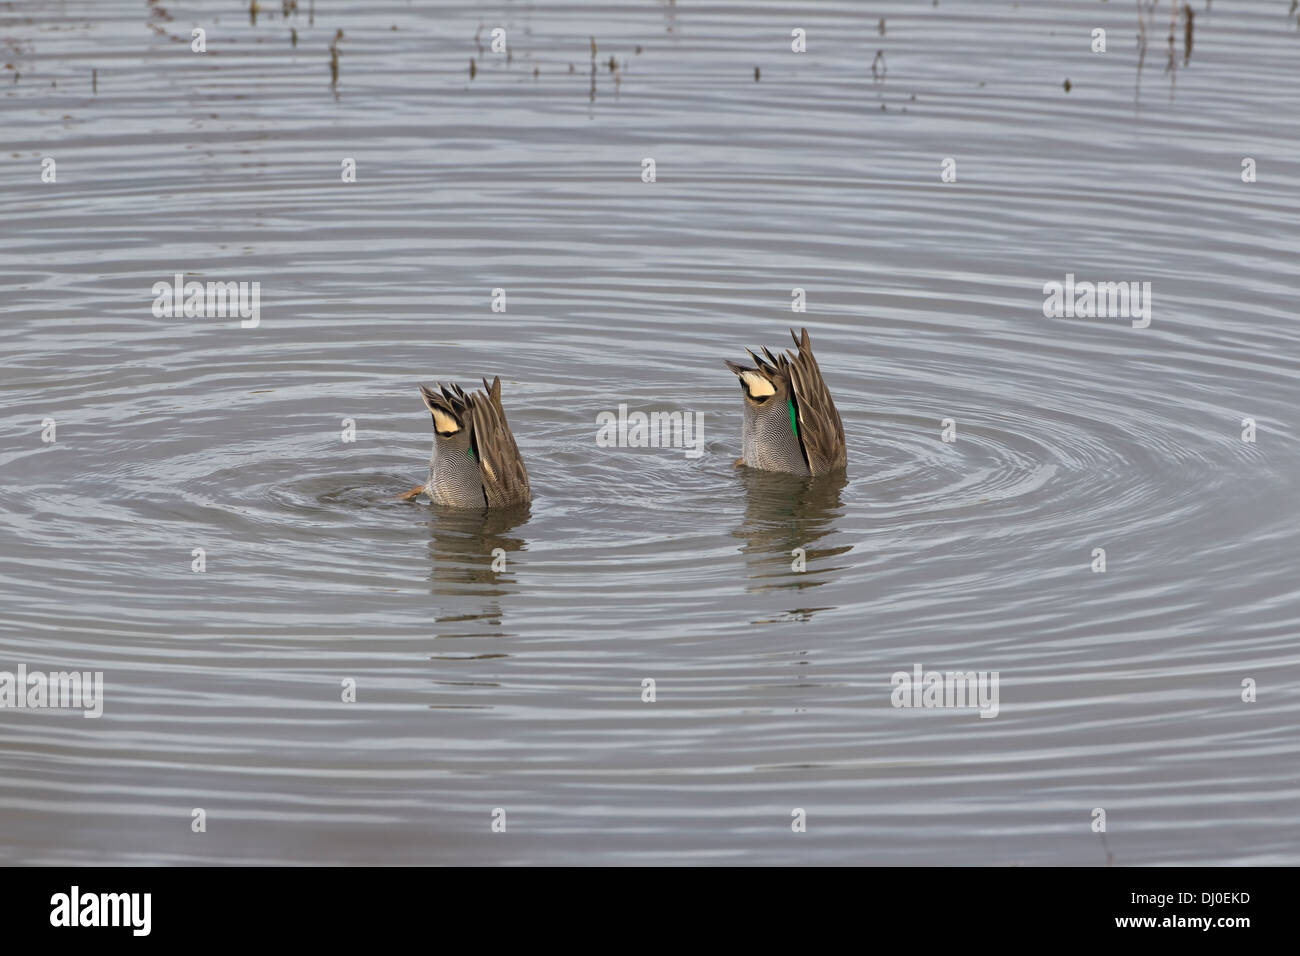 Two teal ducks Anas Crecca diving in unison with their bottoms in the air Stock Photo